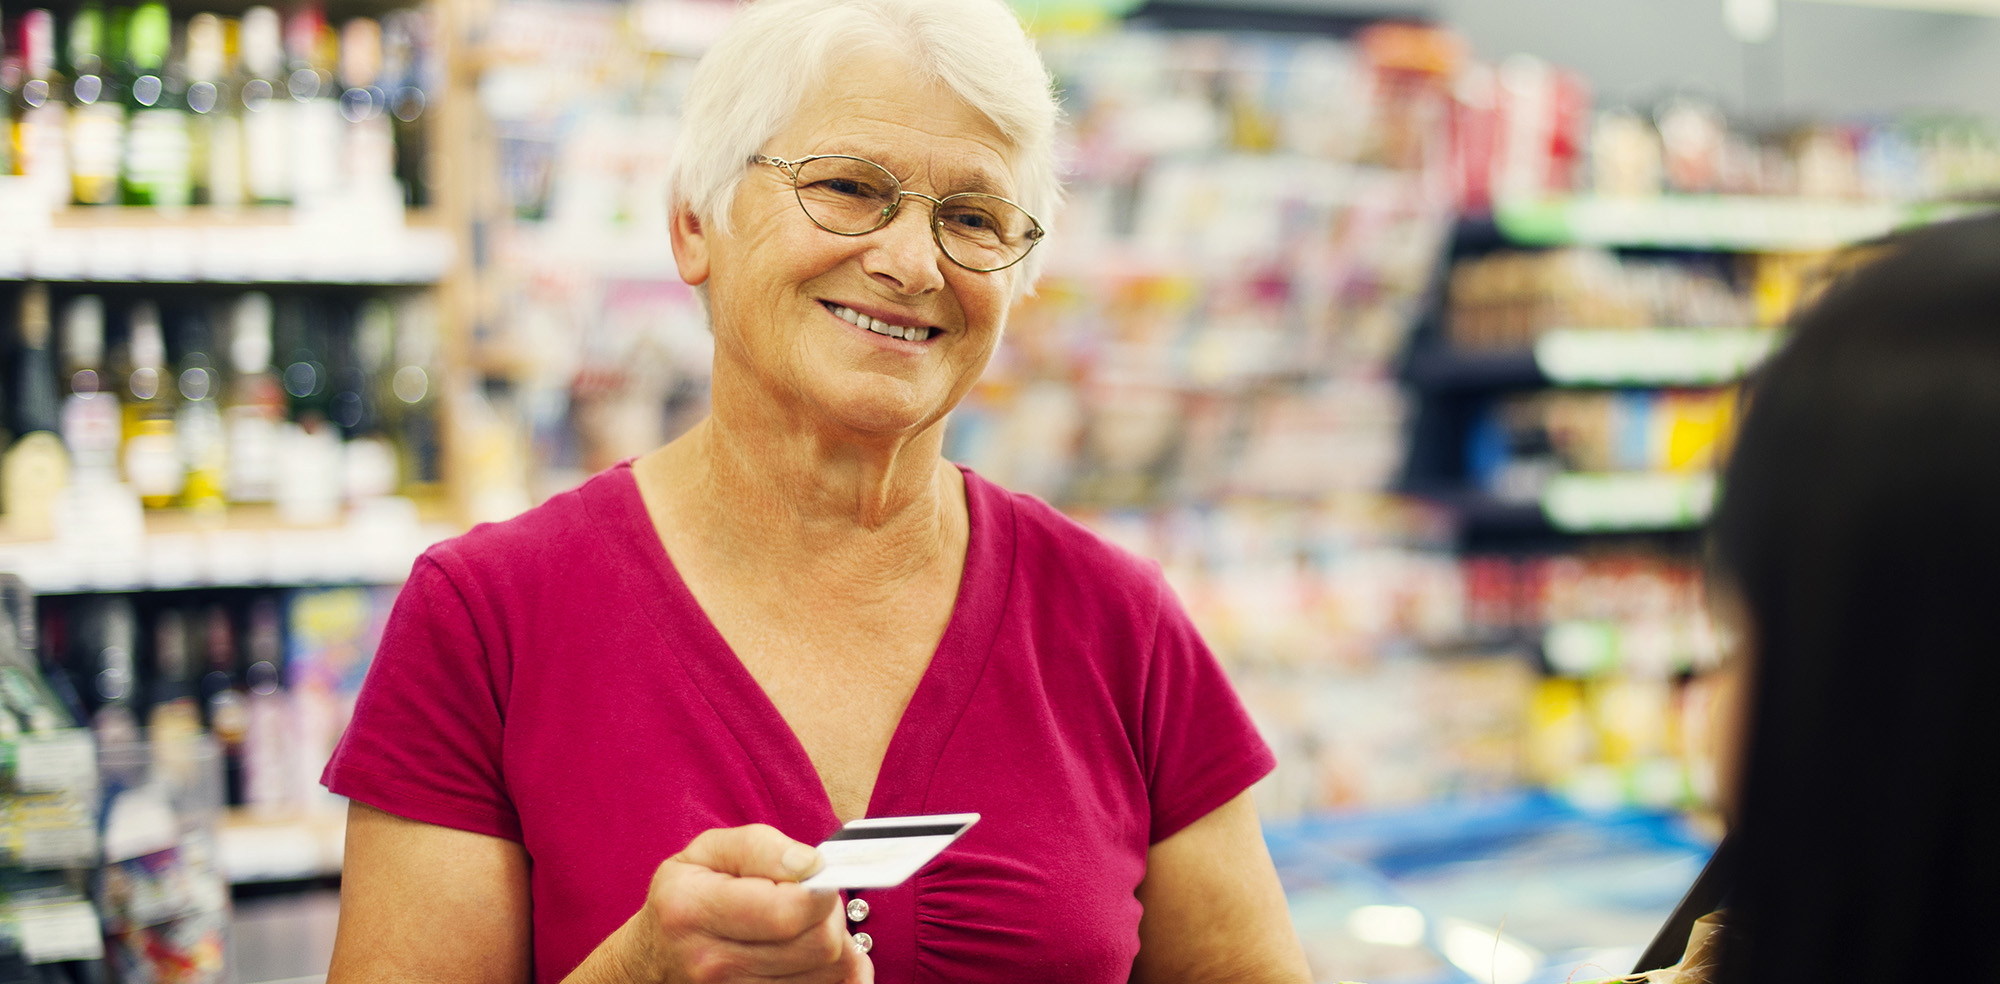 14 places you didn't know you could use your Seniors Card